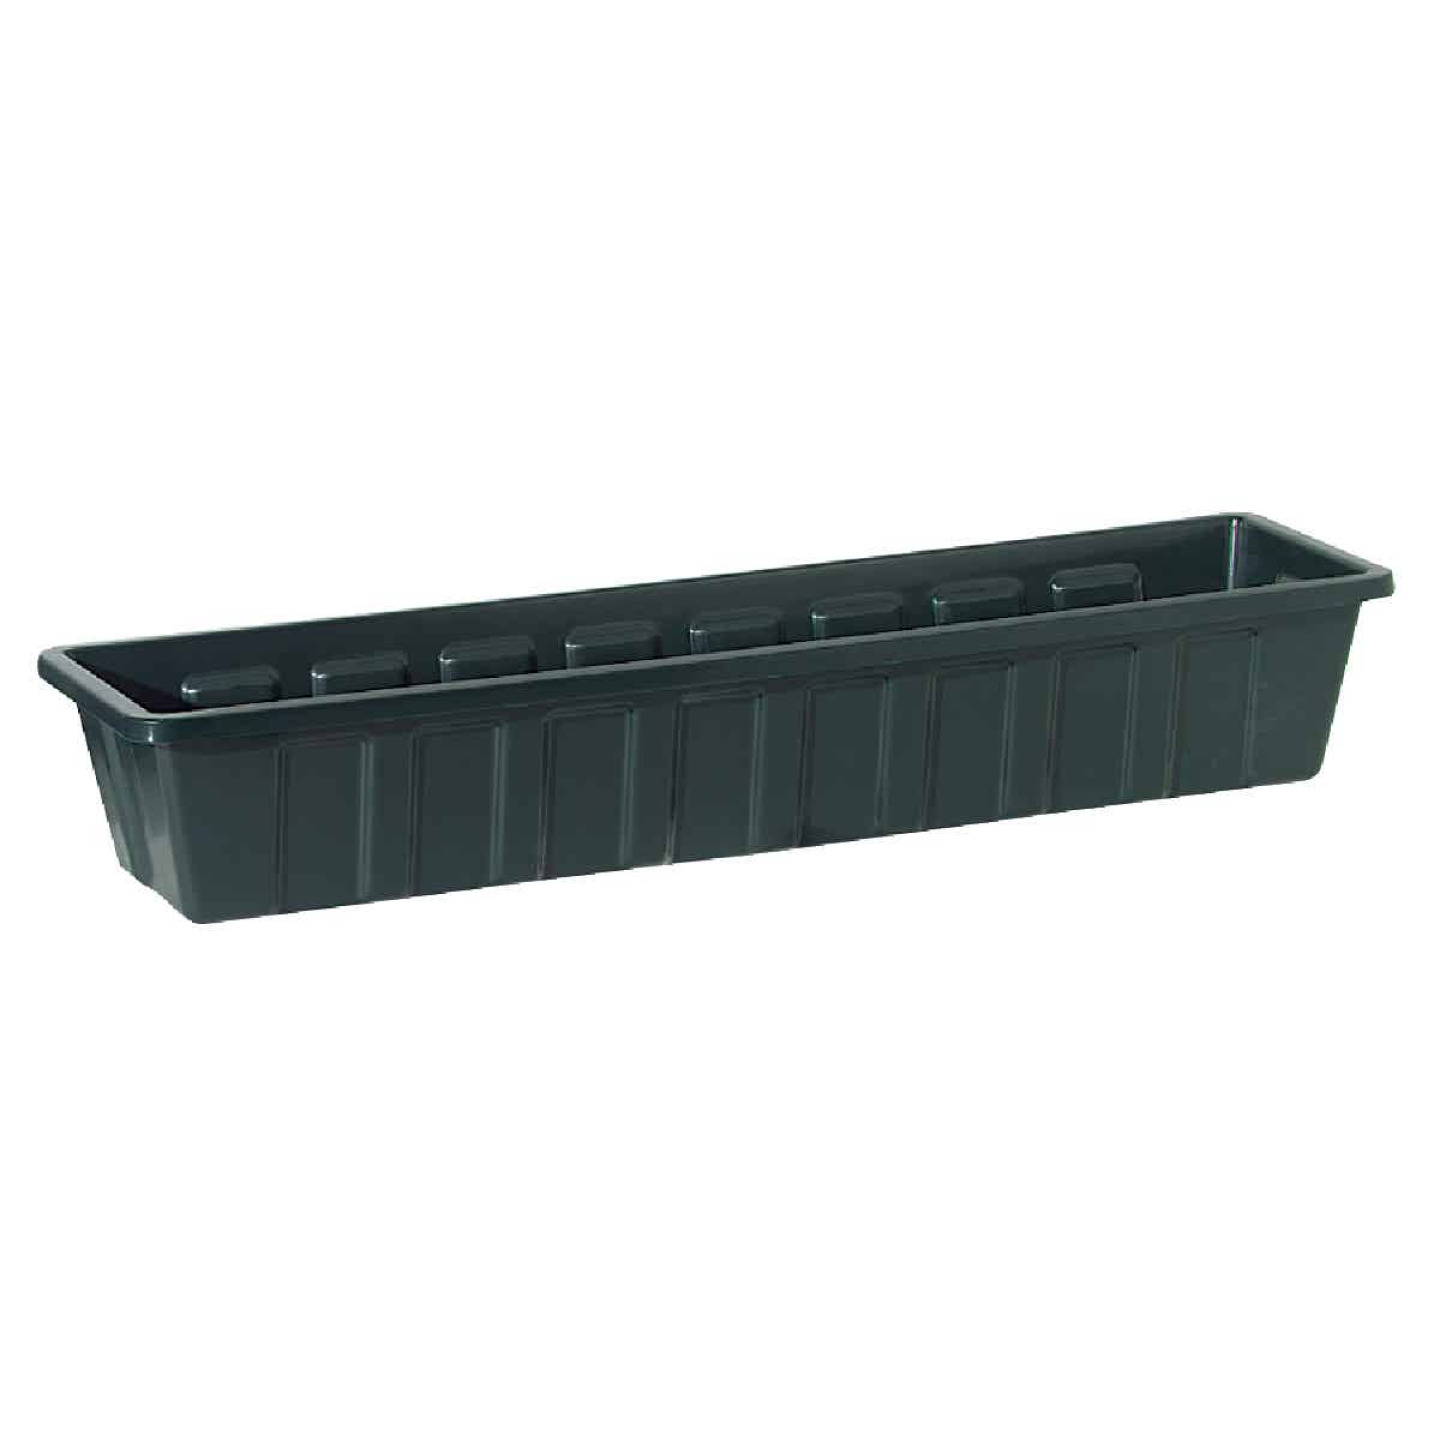 Novelty Poly-Pro 18 In. Polypropylene Hunter Green Flower Box Planter Image 1